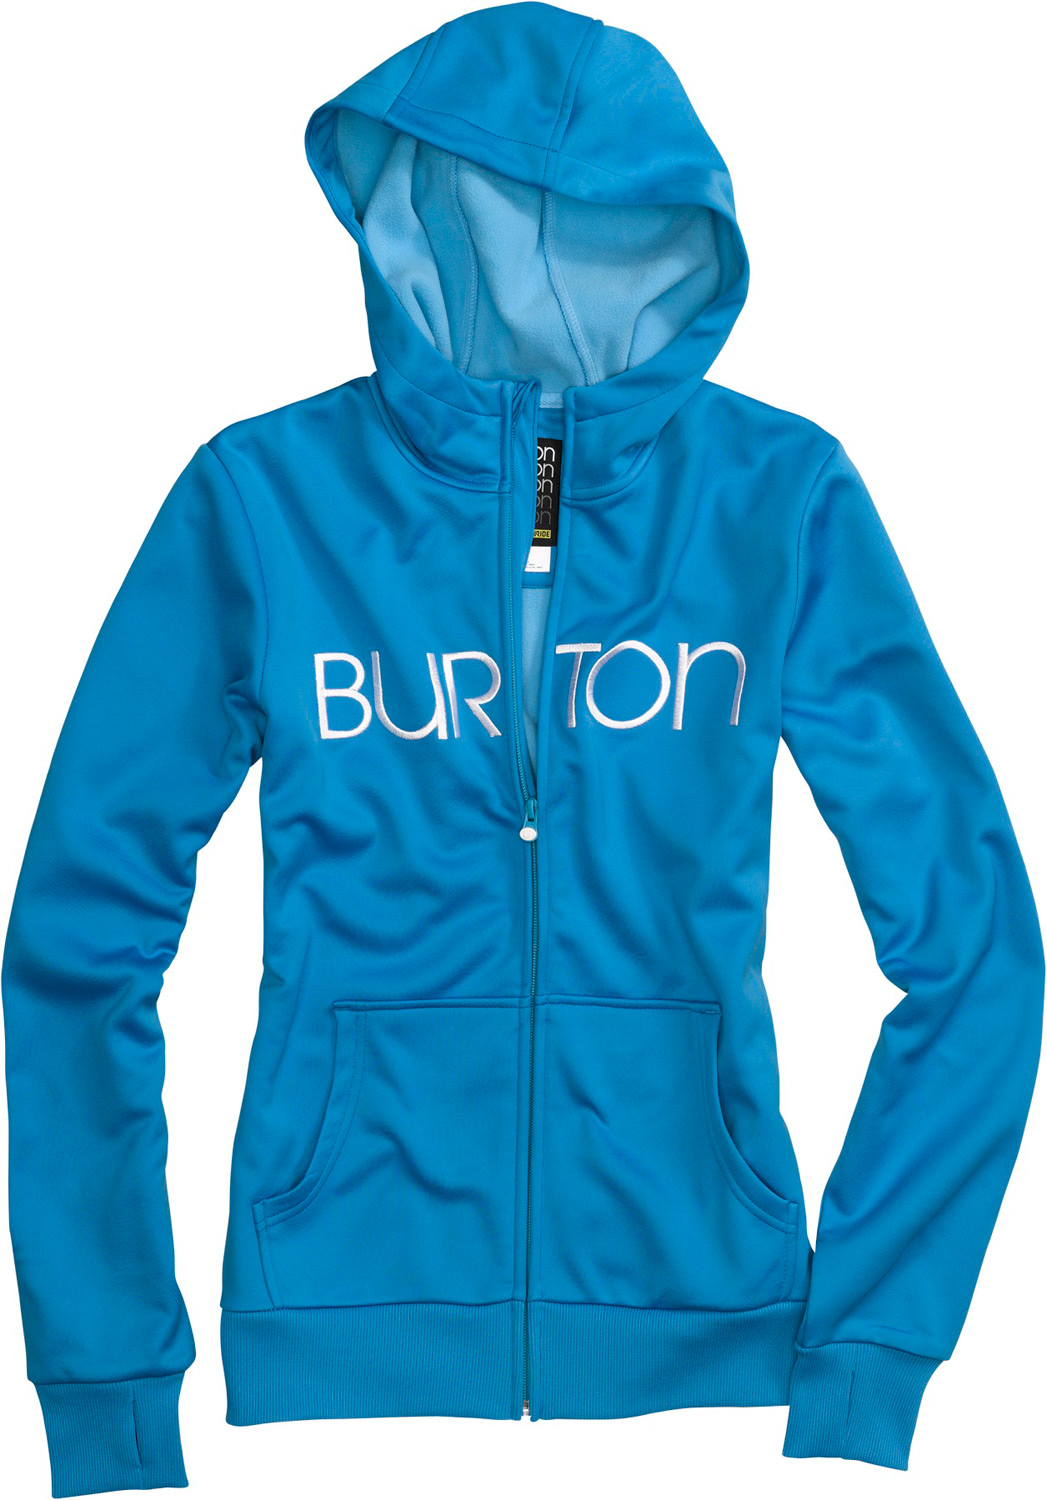 Snowboard Four scoops of fleece with all the sweet toppings-quick-drying heat for mountain or street.Key Features of the Burton Scoop Hoodie: DRYRIDE Thermex Bonded Fleece Fulltime Hood Kangaroo Handwarmer Pockets Sound Pocket with Headphone Cable Port Ribbed Thumbhole Cuffs and Hem - $79.95